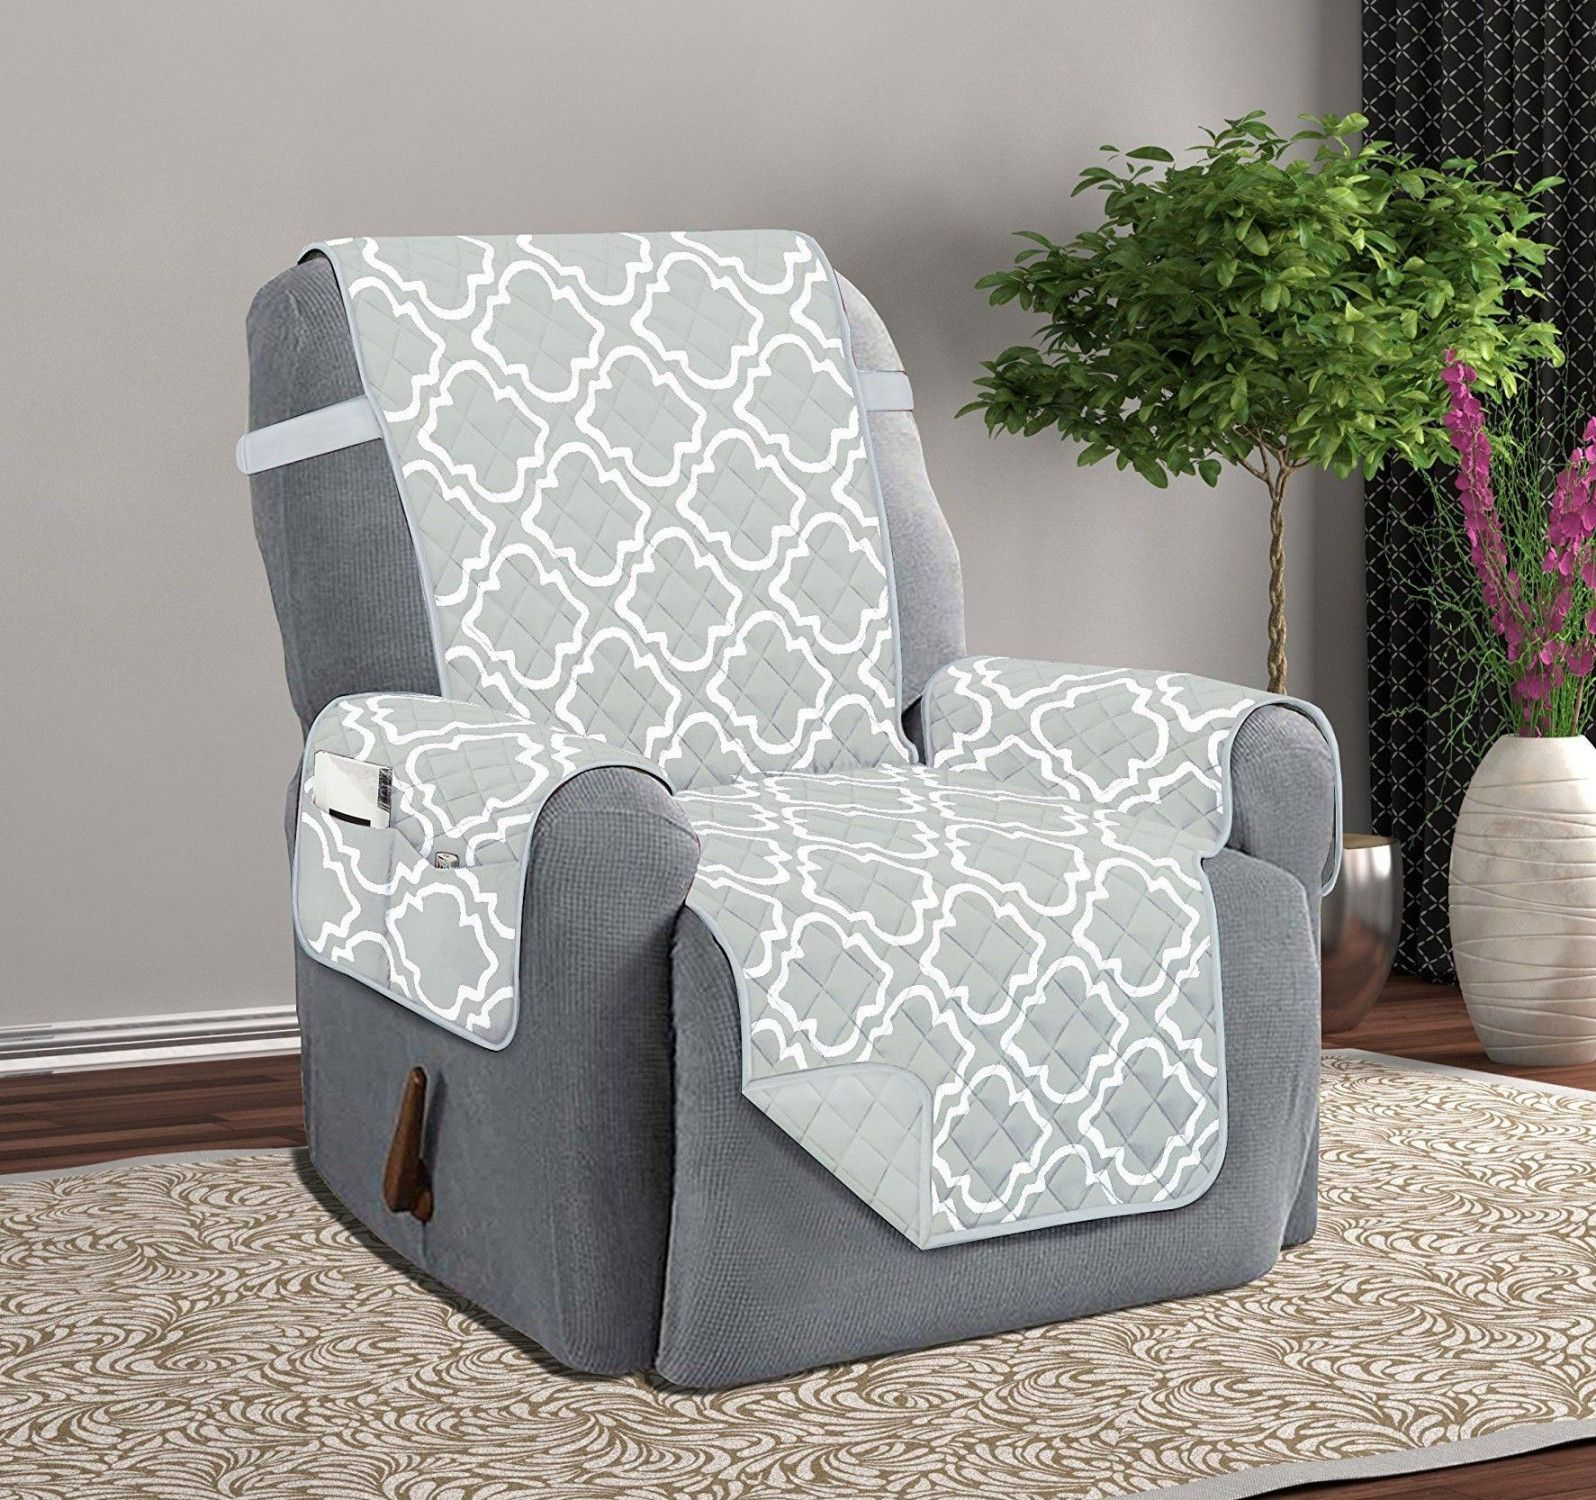 Lazy Boy Recliner Cover Furniture Protector Chair Arm Covers With By George Z Rivera Recliner Cover Lazy Boy Recliner Furniture Protectors